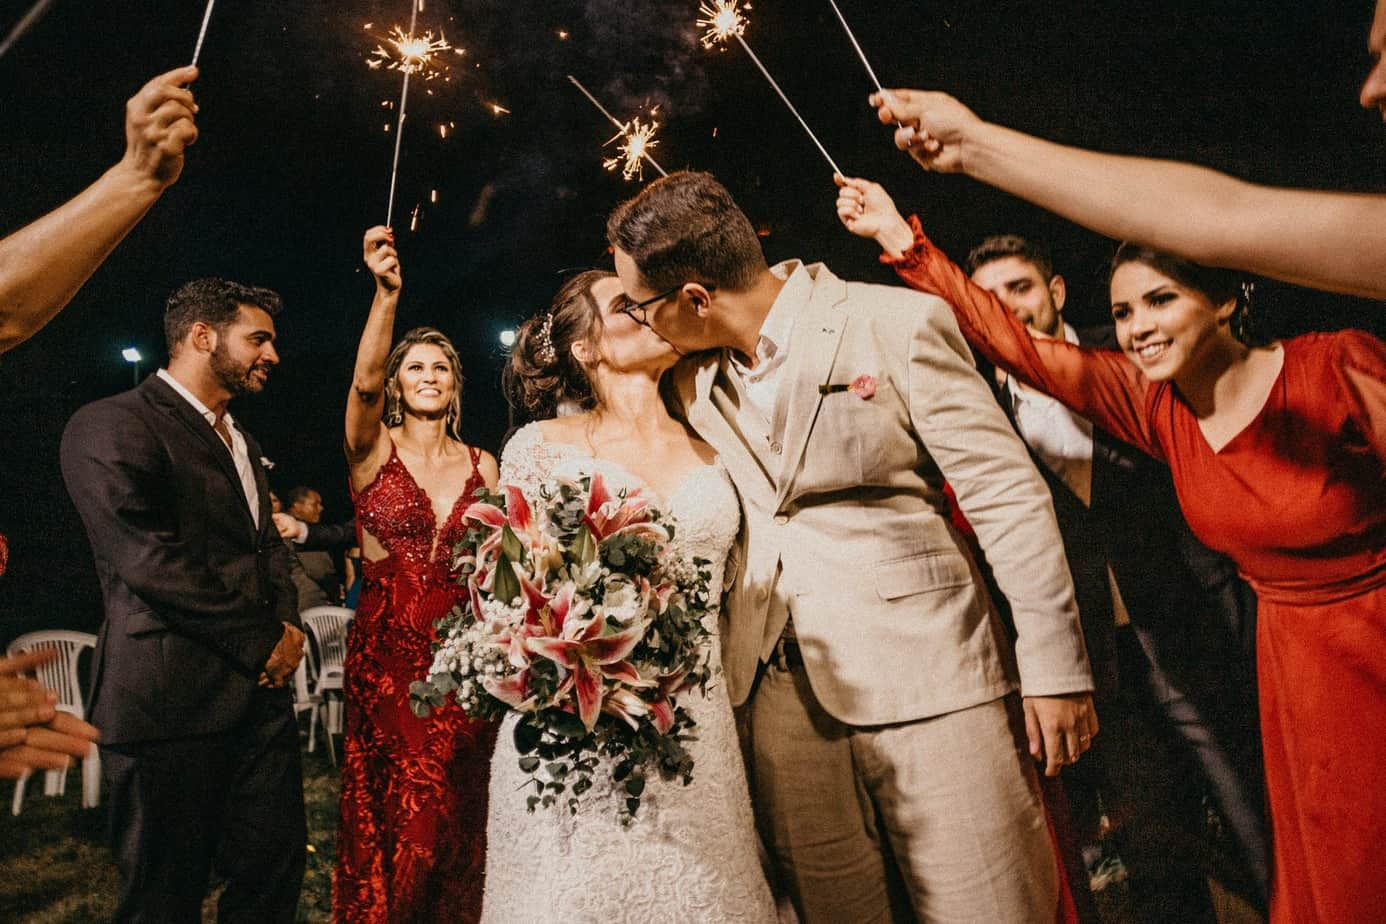 You Should Know This Super Interesting Wedding Weekend Activities To Make Your Guest's Jaws Drop (2021)